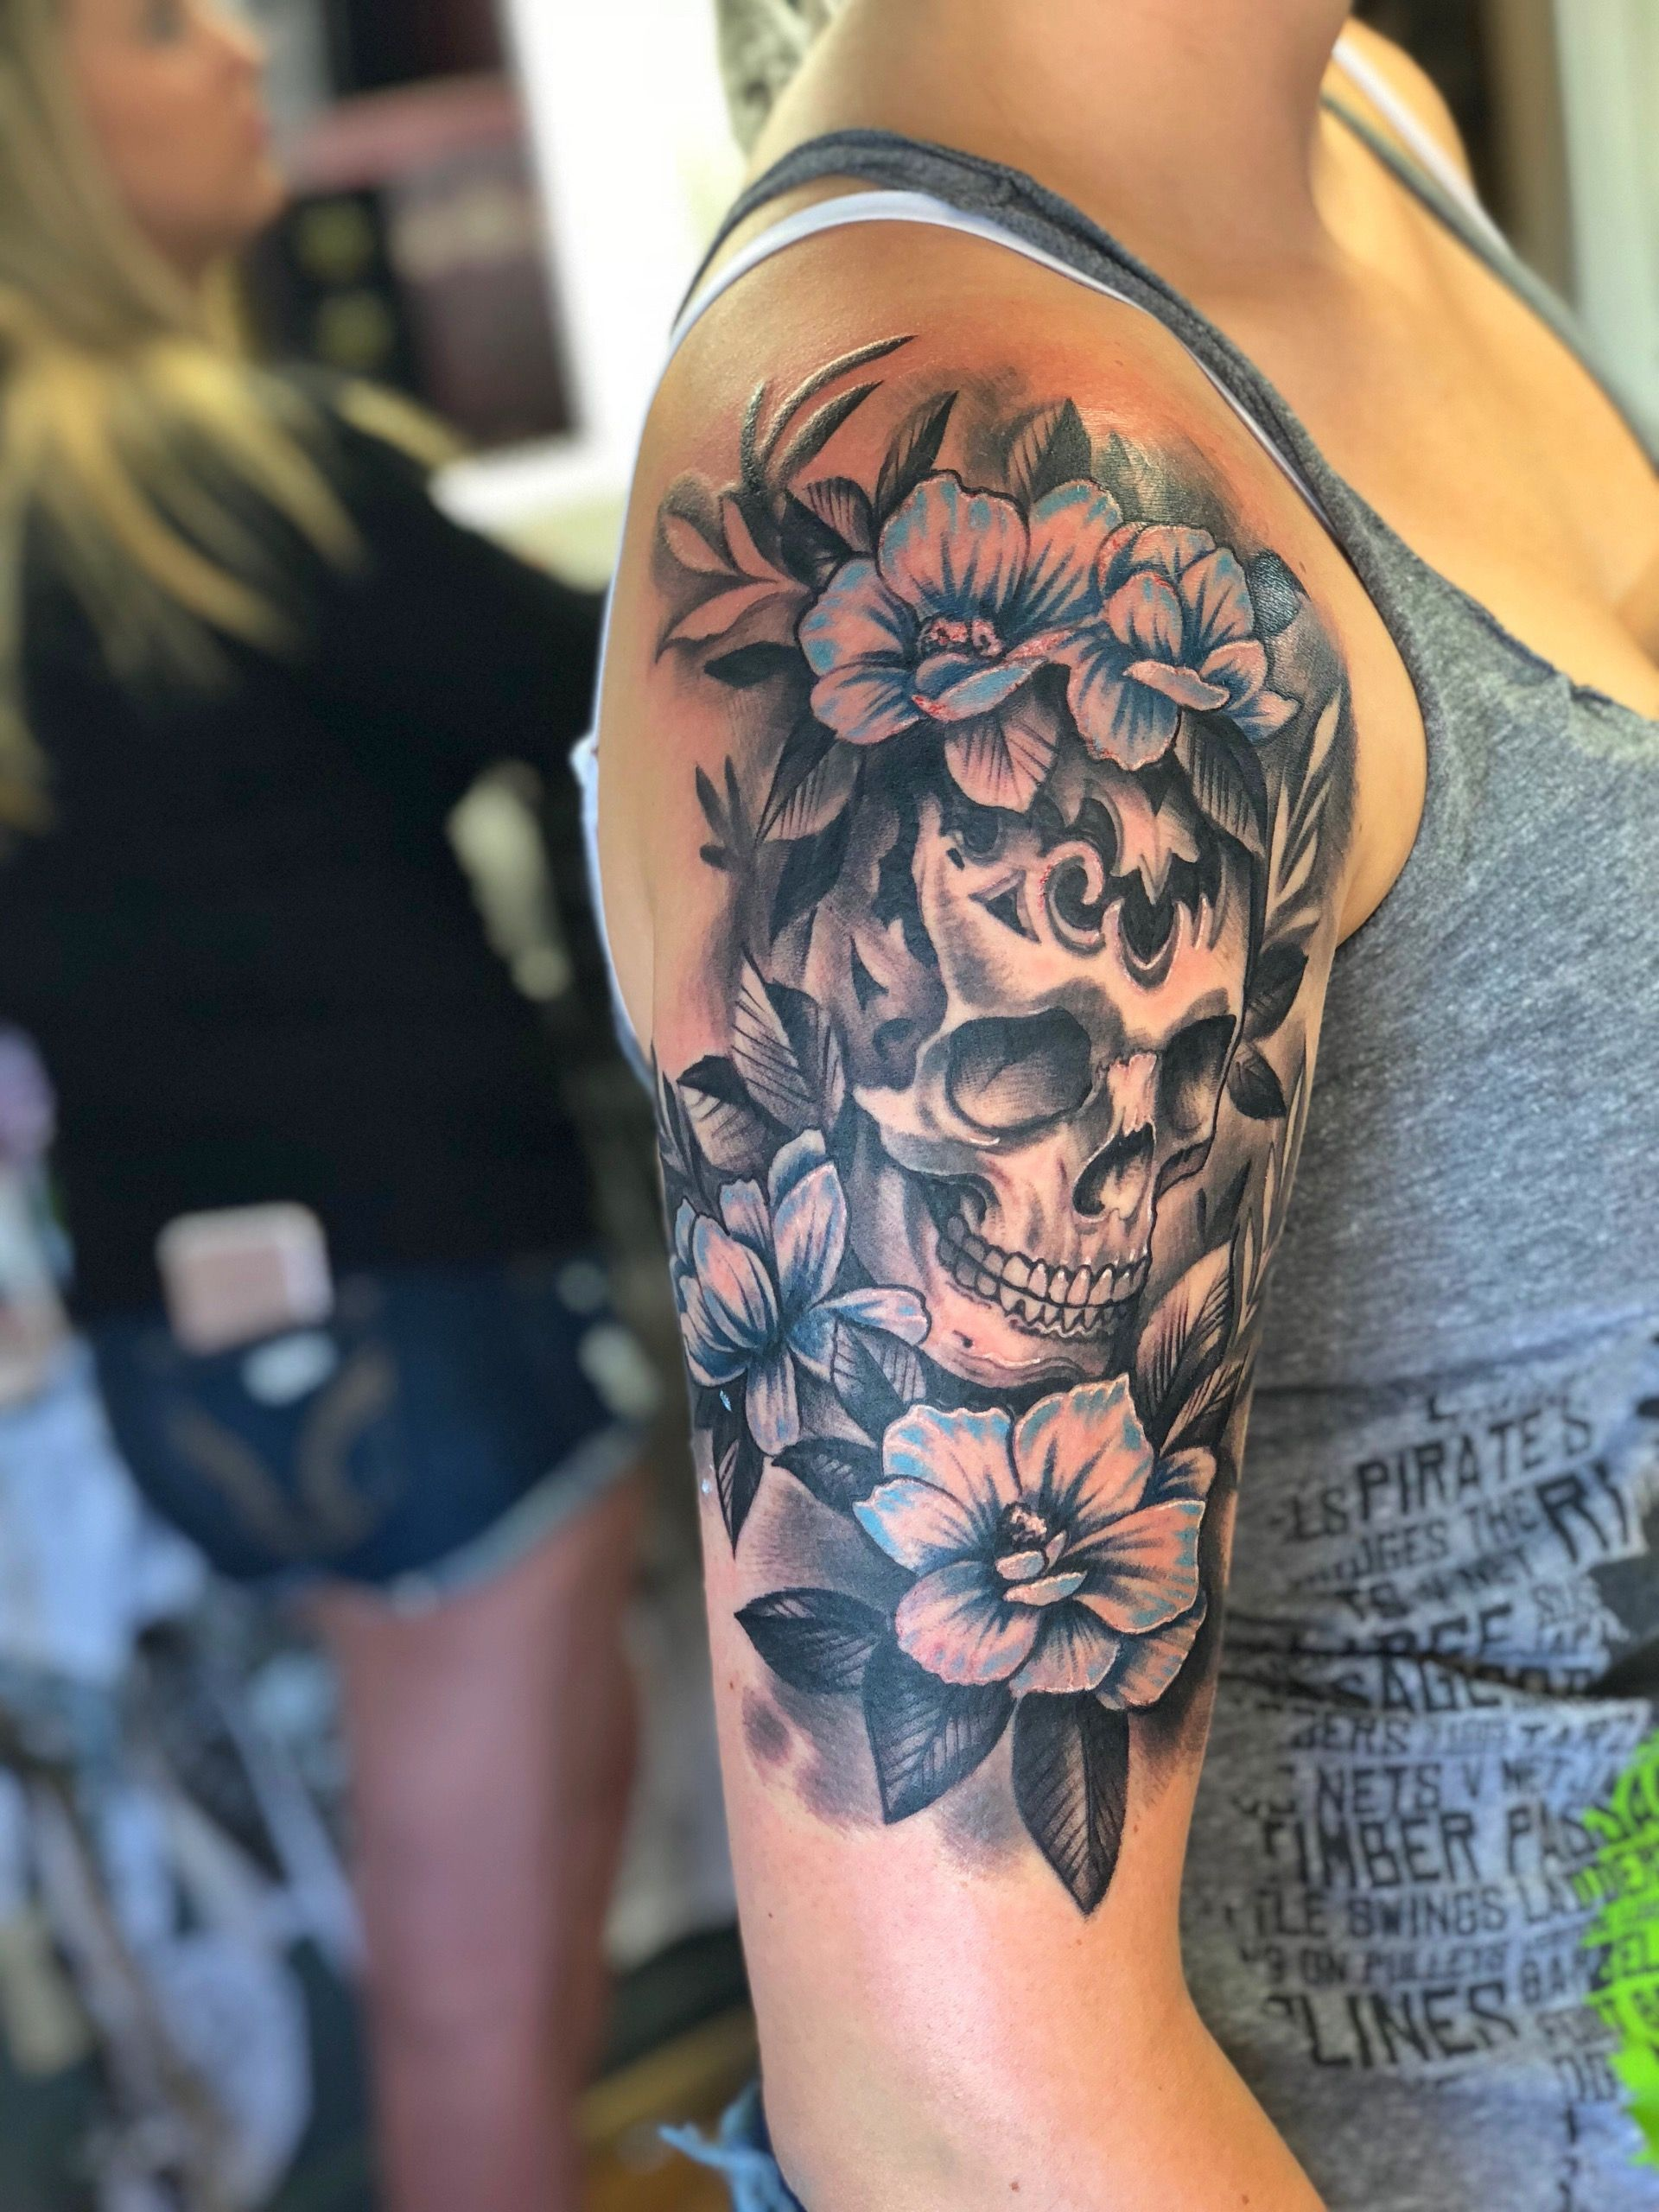 My Half Sleeve Girly Skull Tattoos Skull Sleeve Tattoos Tattoos For Women Half Sleeve